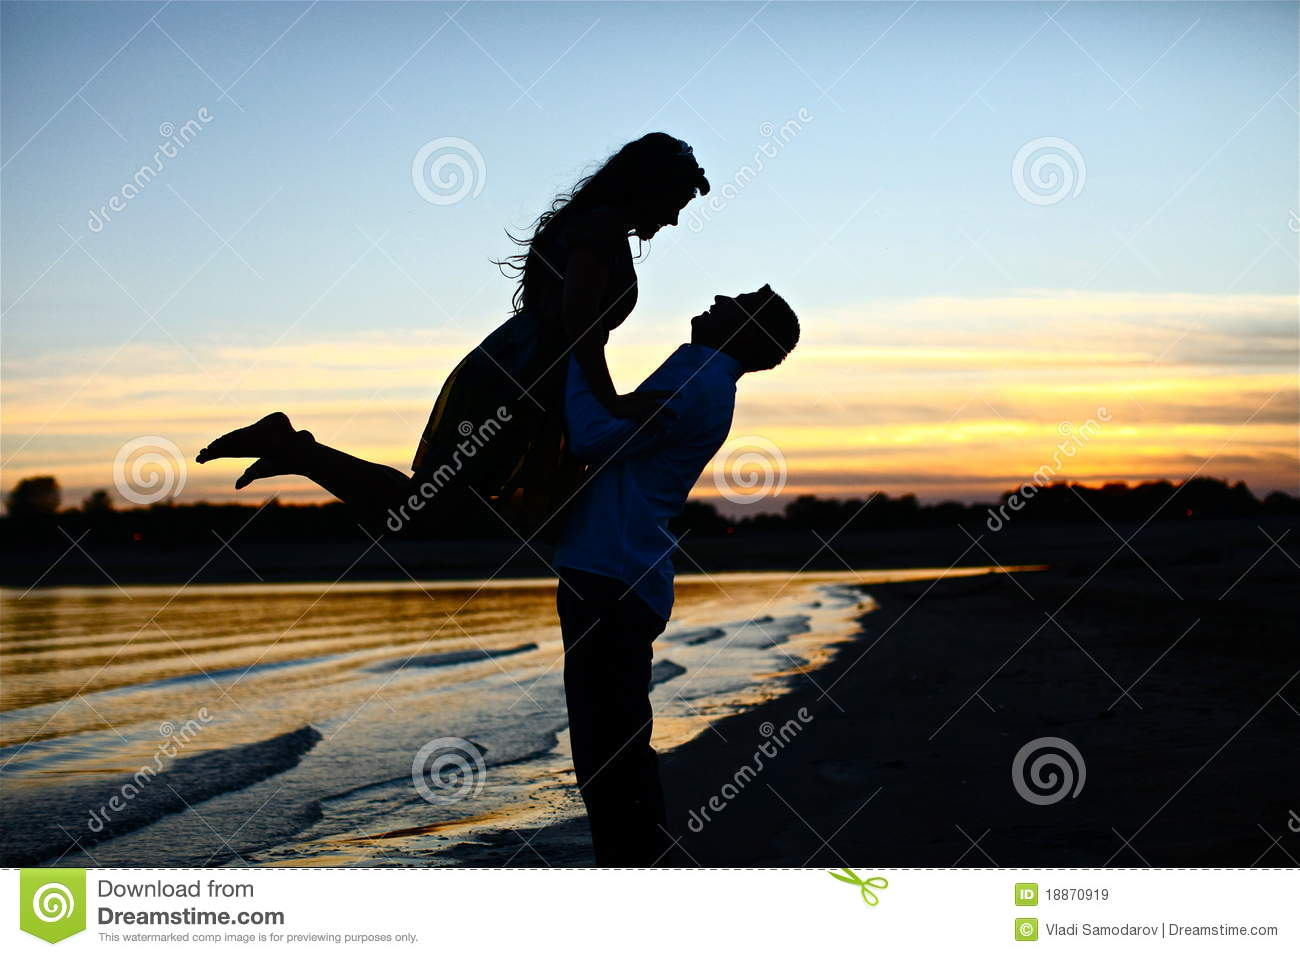 Silhouette of in love couple on beach with a beautiful sunset.